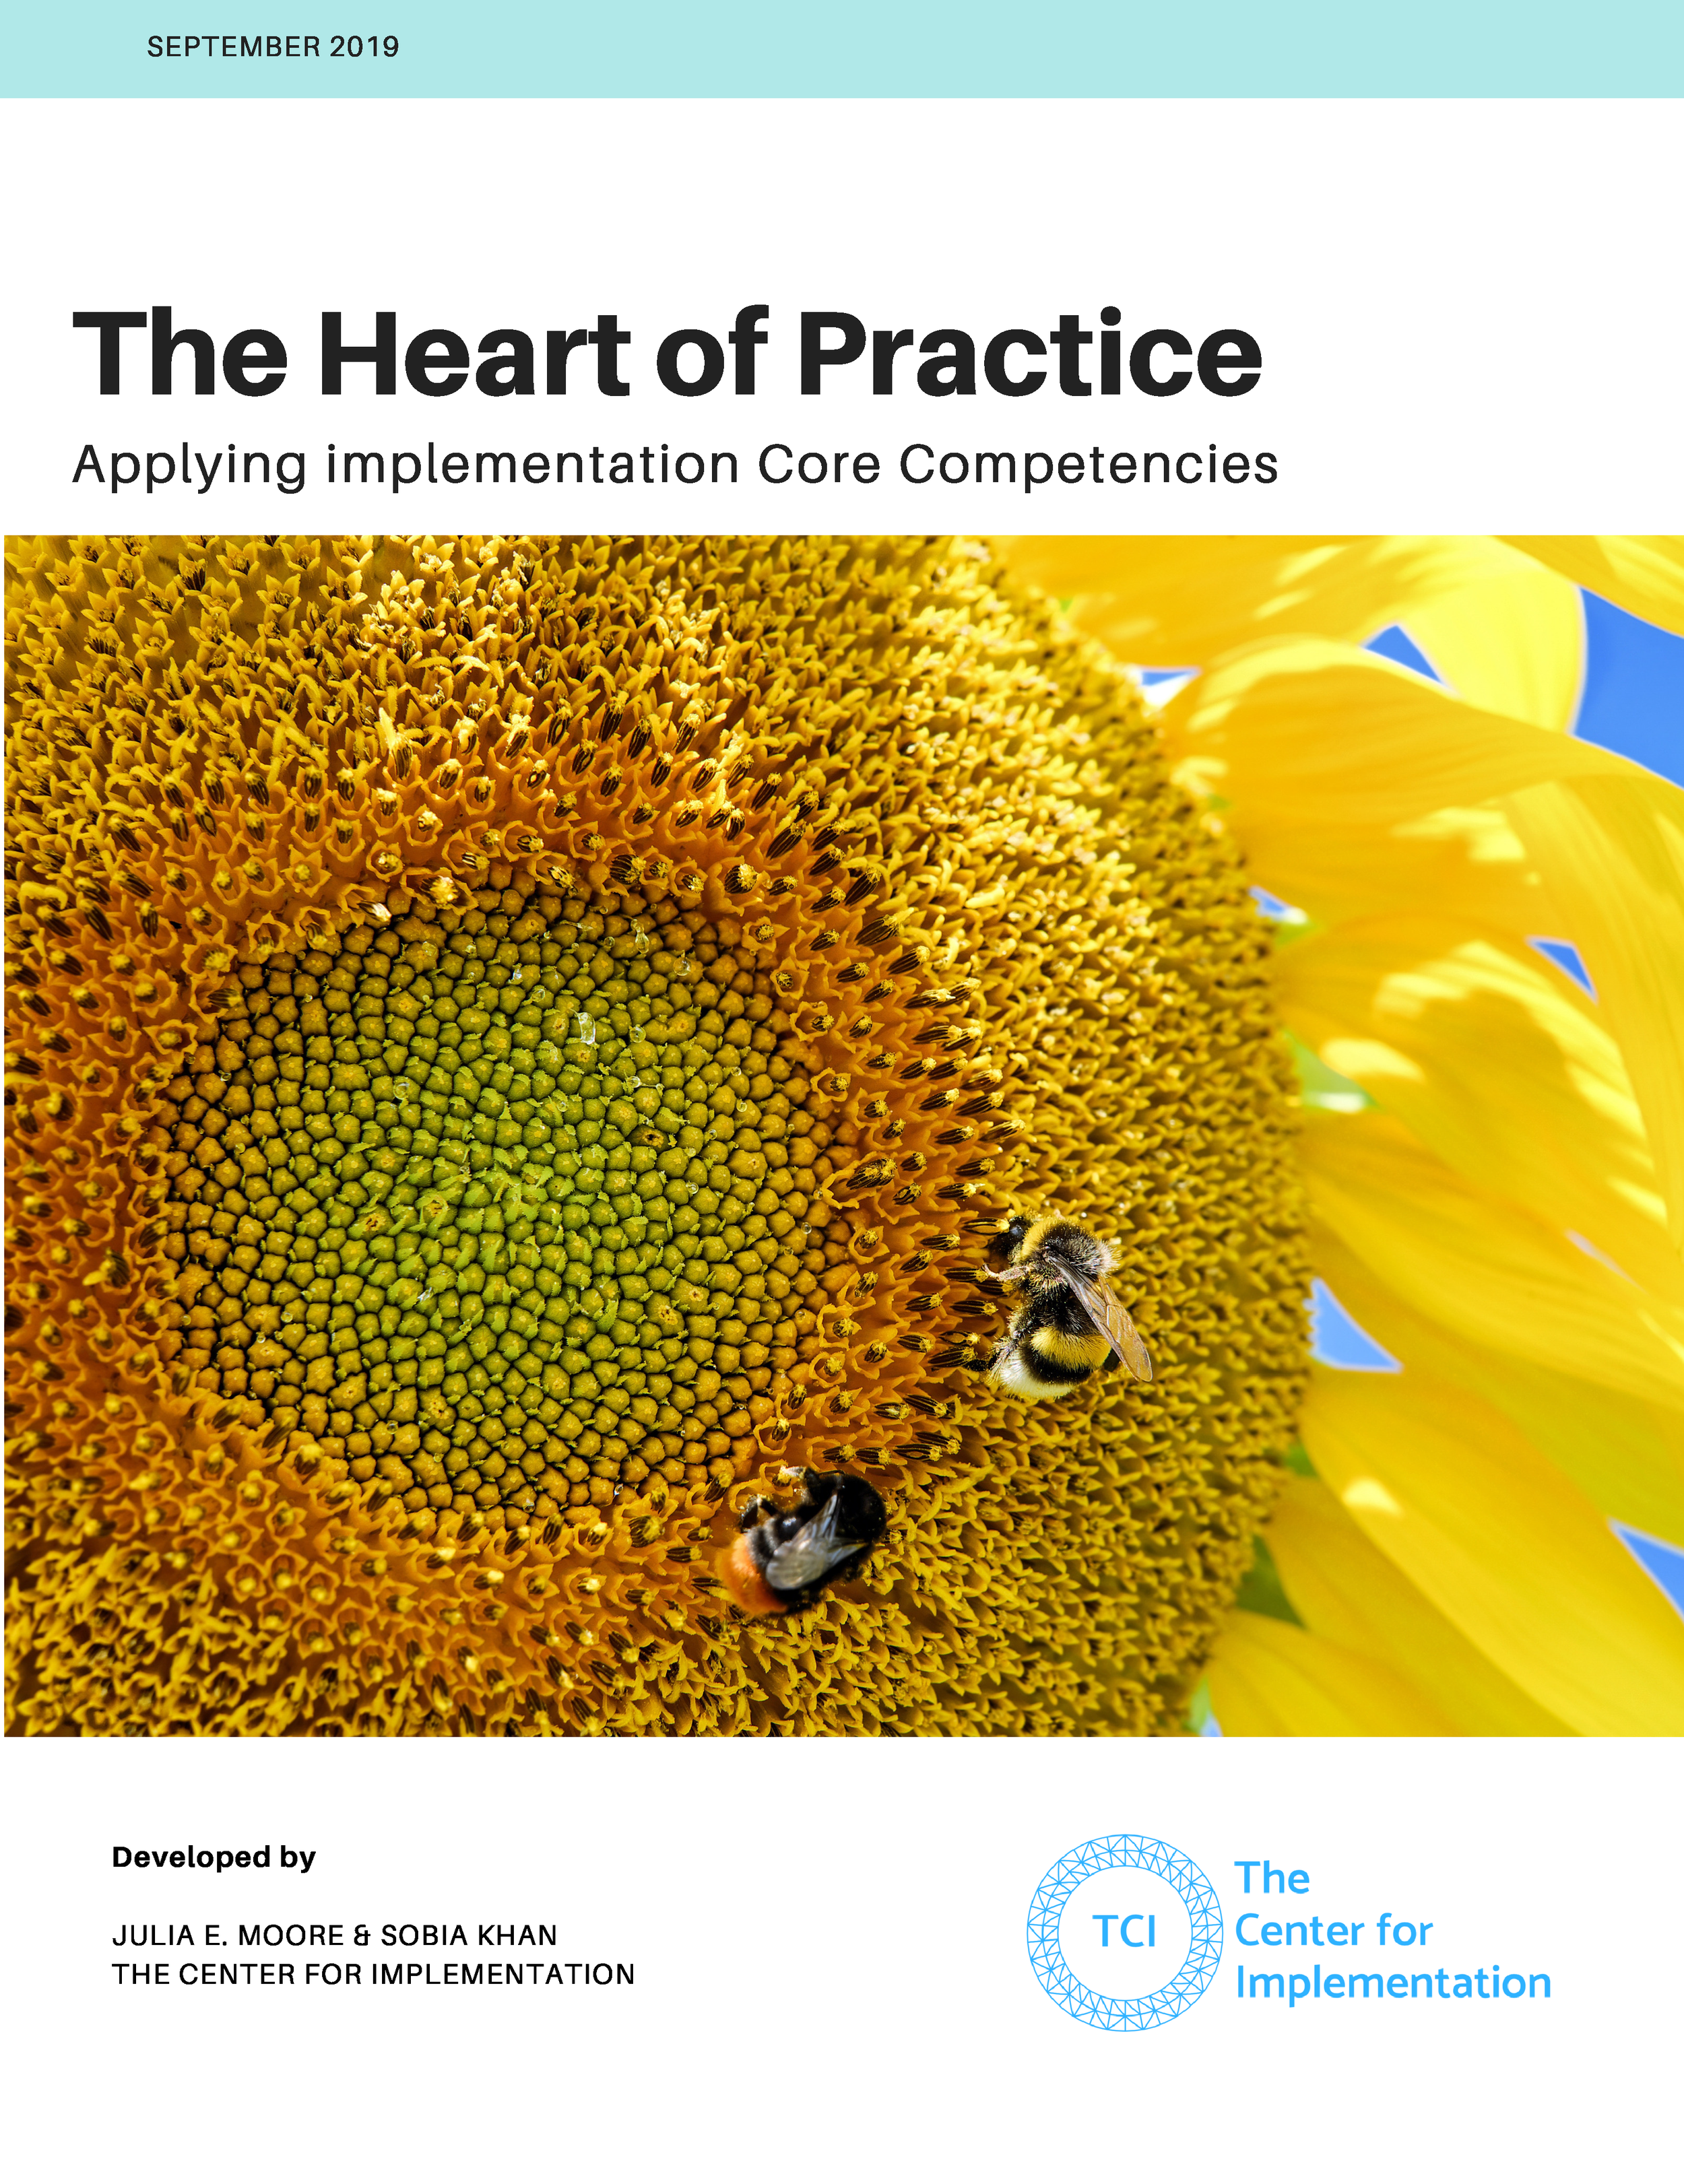 Copy of The Heart of Practice (1)_Page_01.png